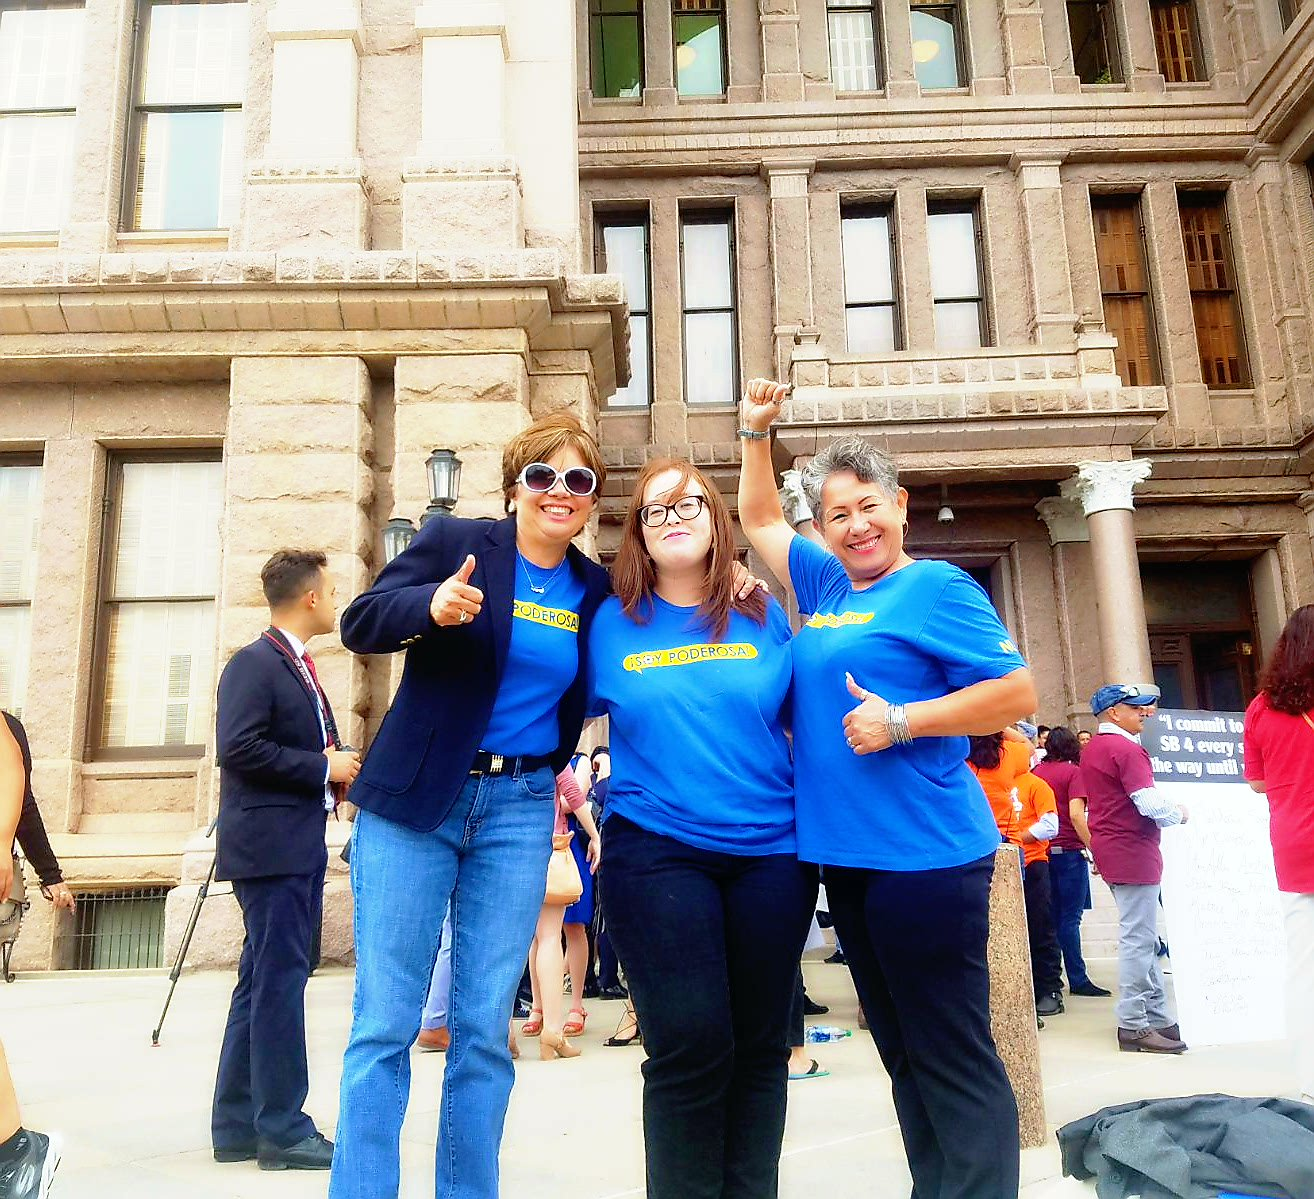 Today we joined coalition partners and cities across TX, repping the Rio Grande Valley,to fight against  racist #SB4 bill #SB4IsHate #RGV https://t.co/oL6Bku5Qi9